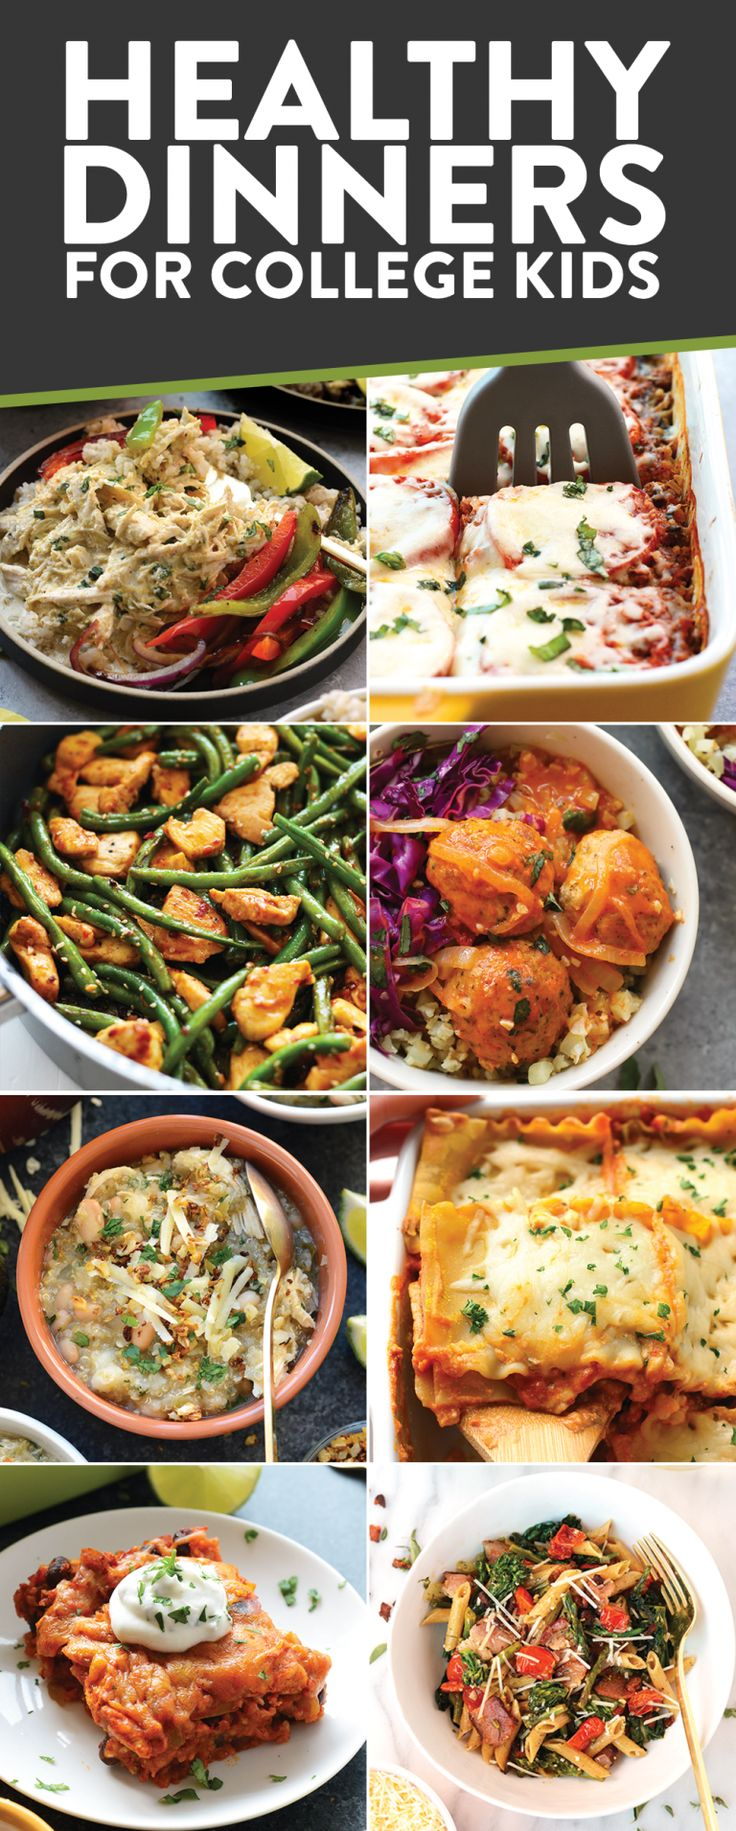 These dinner recipes are perfect for college students on a budget! Try them now!